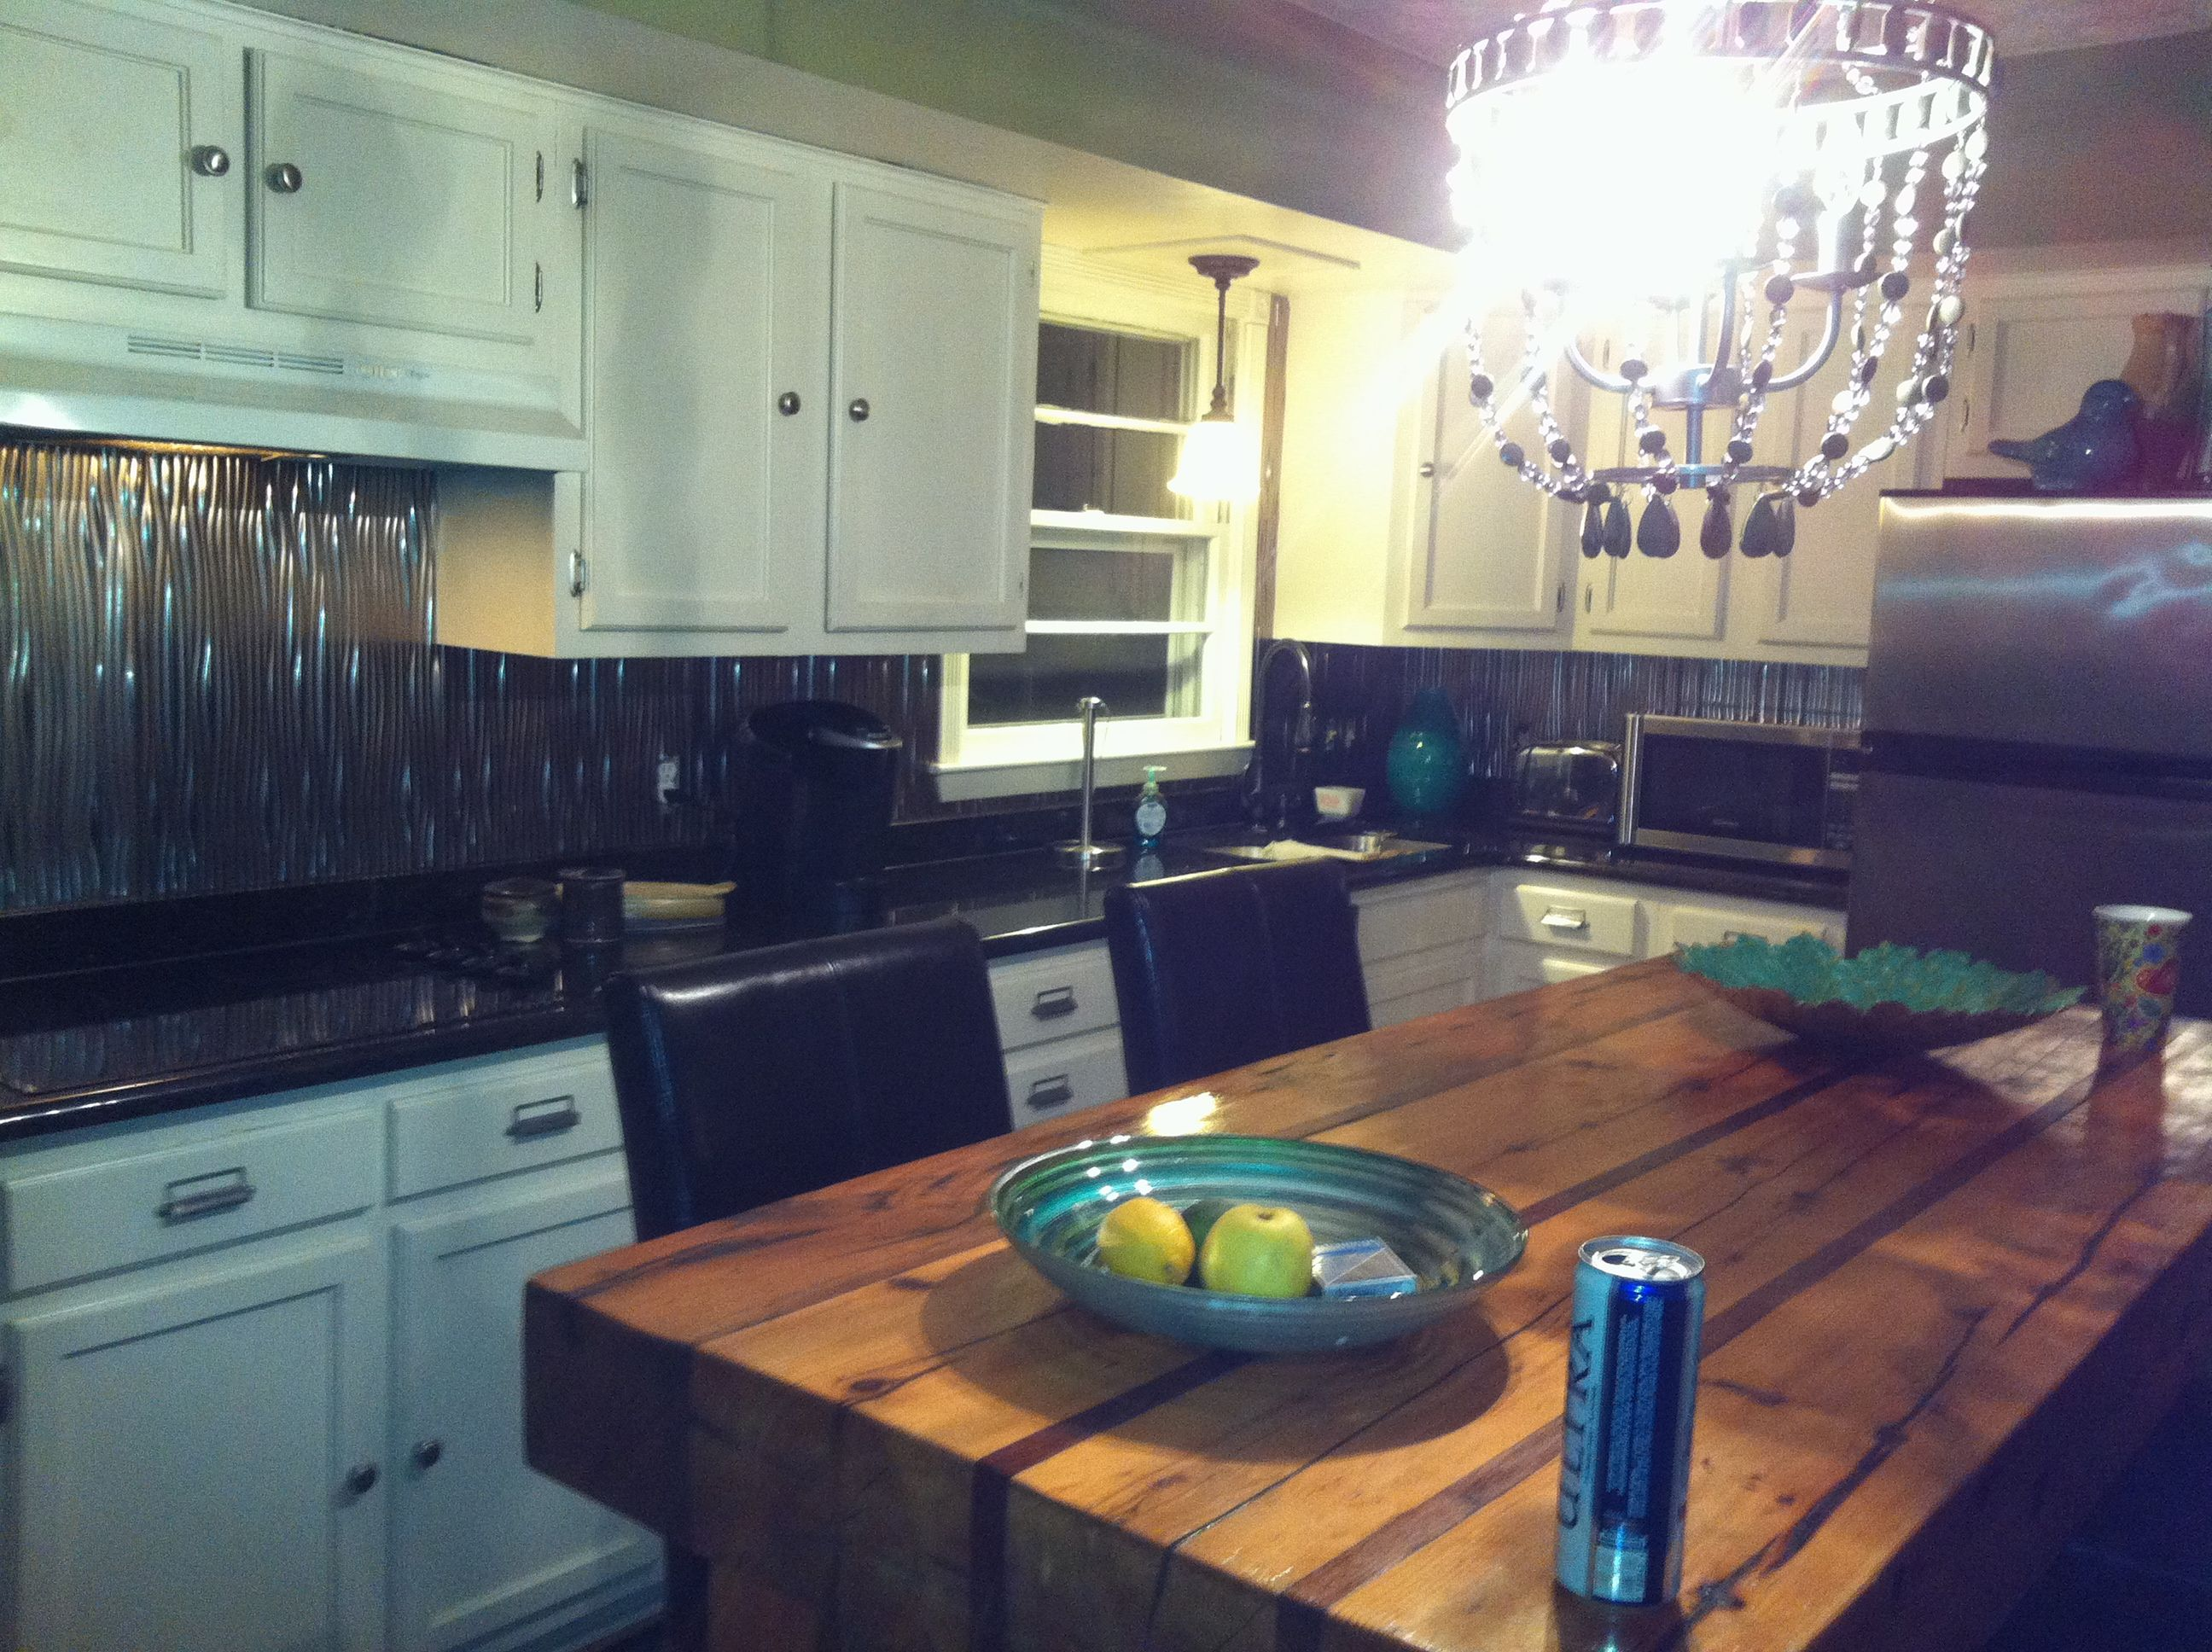 kitchen redo, backsplash is manufactured tin from lowes! (with images) | kitchen redo, kitchen